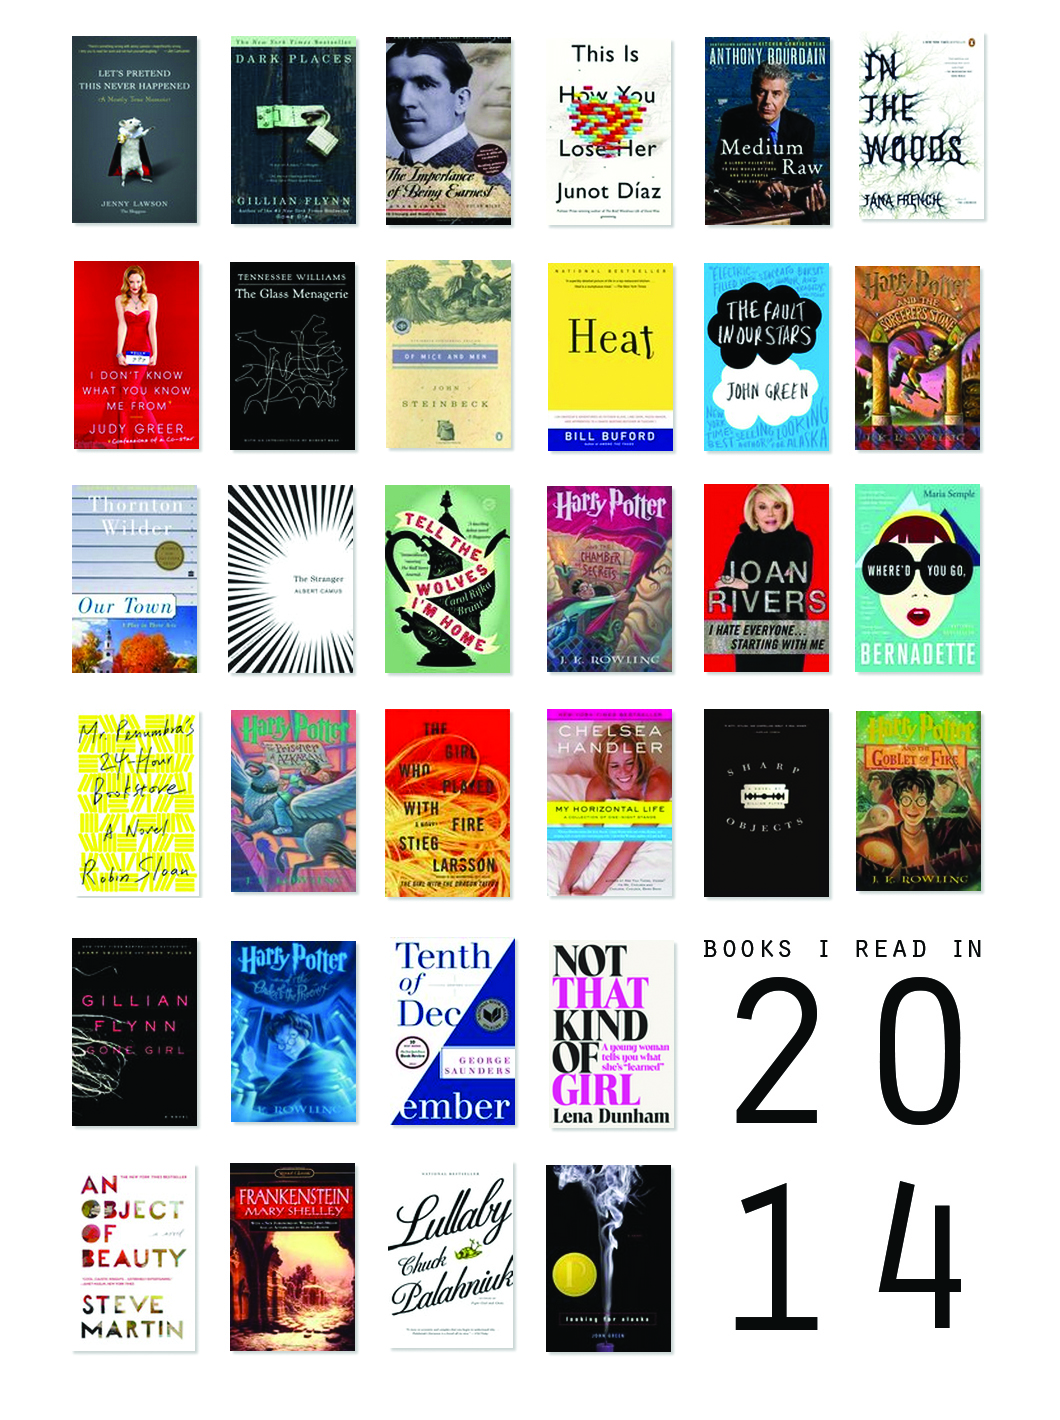 "Books I Read in 2014     Goal:  14    Total:  32    Memoirs : 7 ( Let's Pretend This Never Happened, Medium Raw, I Don't Know What You Know Me From, Heat, Joan Rivers: I Hate Everyone Starting With Me, My Horizontal Life, Not That Kind of Girl)     Books with left-justified type in the upper left corner:  4 ( In The Woods, Tenth of December, Not That Kind of Girl, An Object of Beauty )    ""Classics"" : 6 ( The Importance of Being Earnest, The Glass Menagerie, Of Mice and Men, Our Town, The Stranger, Frankenstein)     Books written by authors who aren't white men:  17 ( Let's Pretend This Never Happened, Dark Places, This Is How You Lose Her, In The Woods, I Don't Know What You Know Me From, Harry Potter 1-5, Tell The Wolves I'm Home, Joan Rivers: I Hate Everyone Starting With Me, Where'd You Go Bernadette?, My Horizontal Life, Sharp Objects, Not That Kind of Girl, Frankenstein)     Favorites  : In The Woods, Mr. Penumbra's 24 Hour Bookstore, An Object of Beauty     Favorite covers:   This Is How You Lose Her, In The Woods, Where'd You Go Bernadette, An Object of Beauty     What are some books you would recommend?"